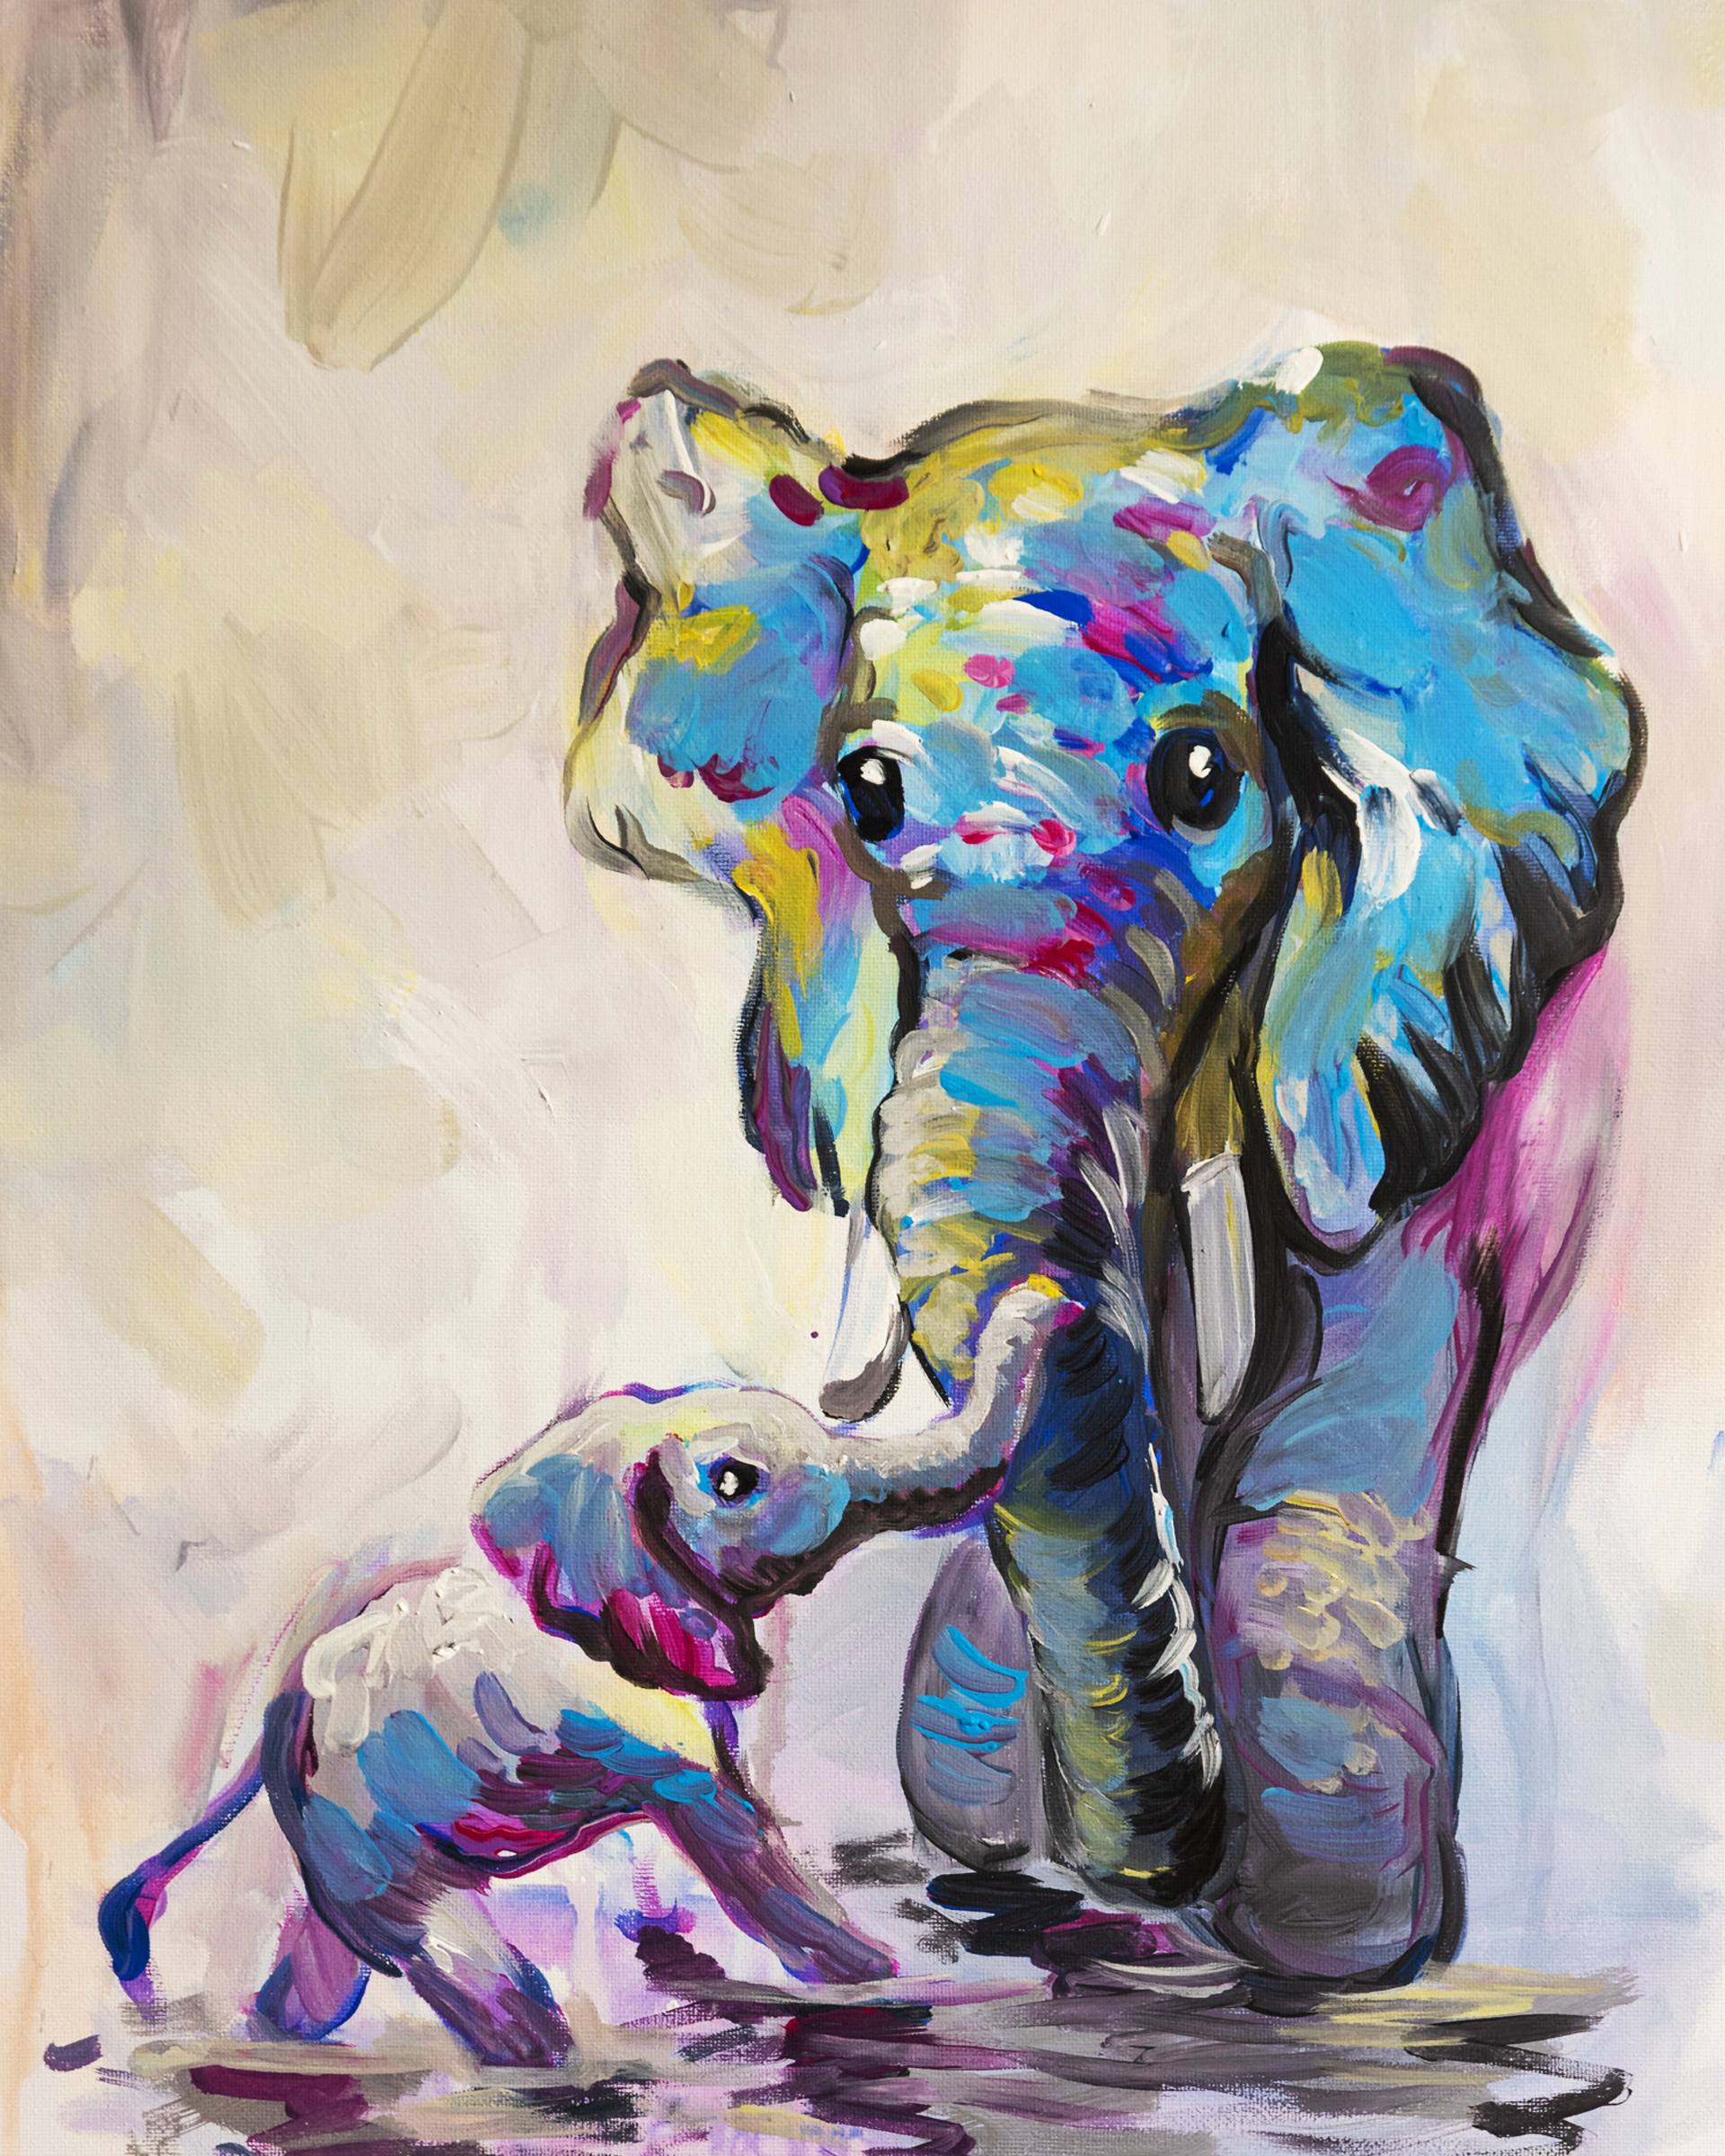 A Elephants experience project by Yaymaker